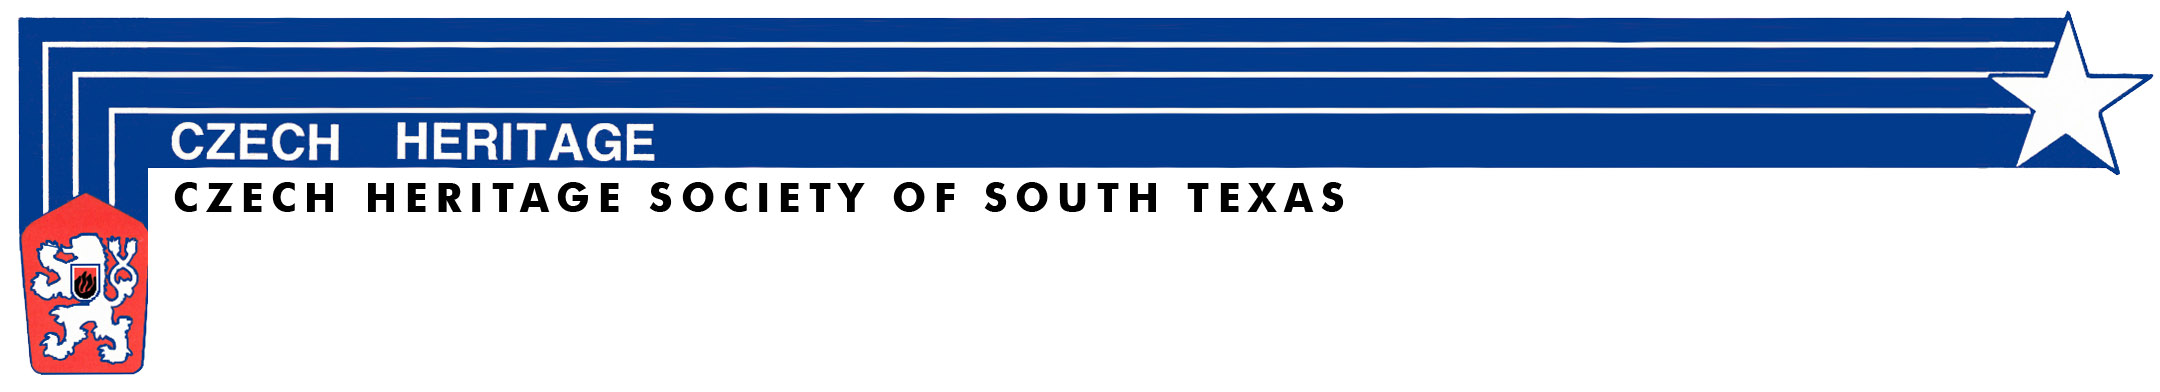 Czech Heritage Society of South Texas